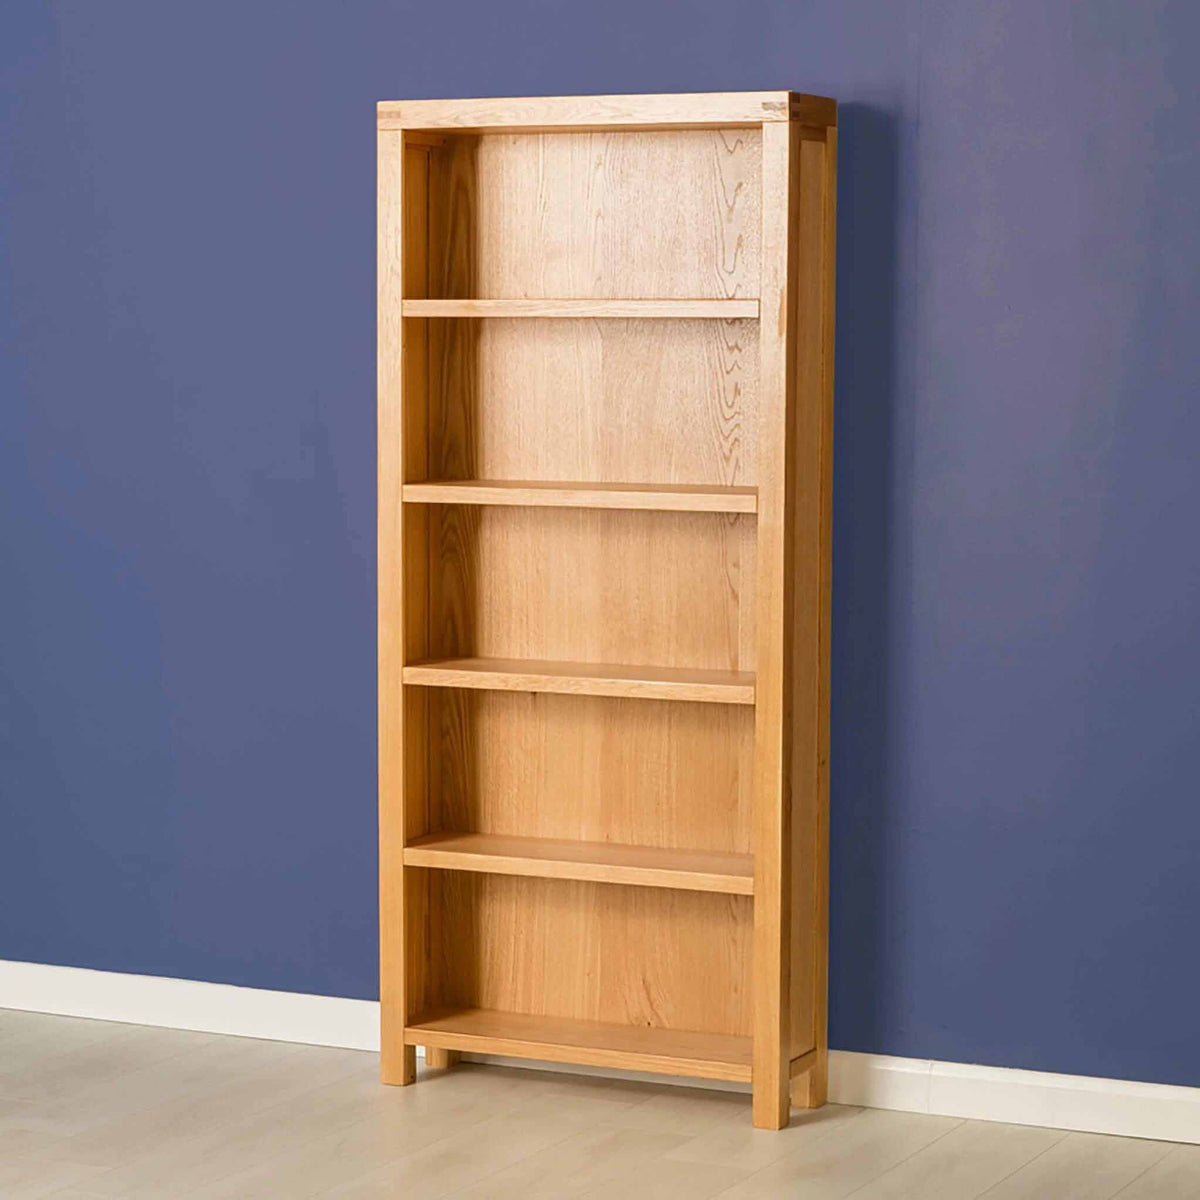 The Abbey Light Oak Large Wooden Bookcase by Roseland Furniture